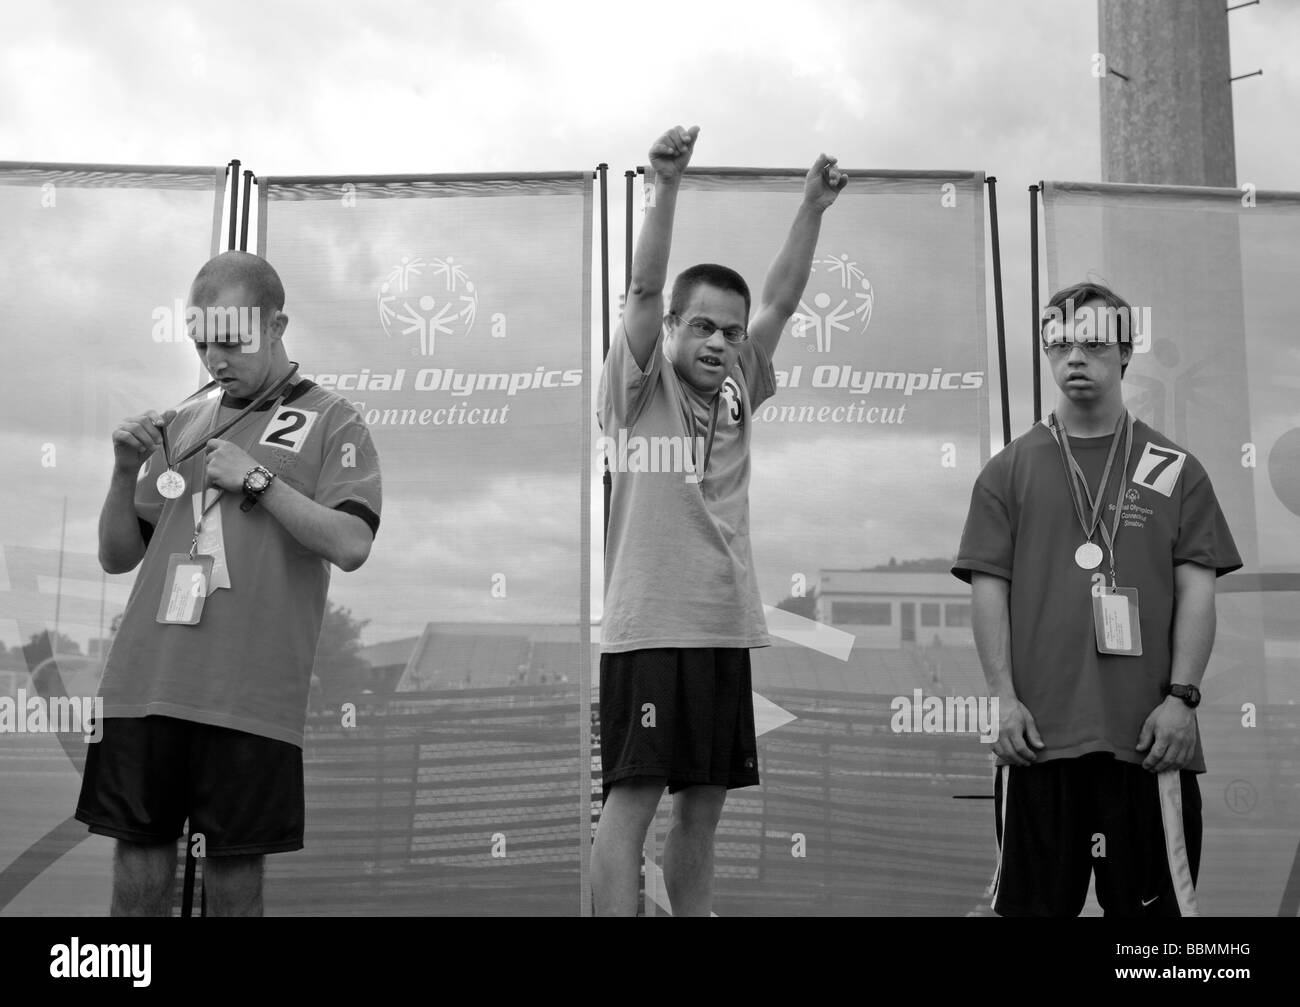 Special Olympians react as they receive medals at an awards ceremony at the Special Olympics Games, New Haven, CT, - Stock Image